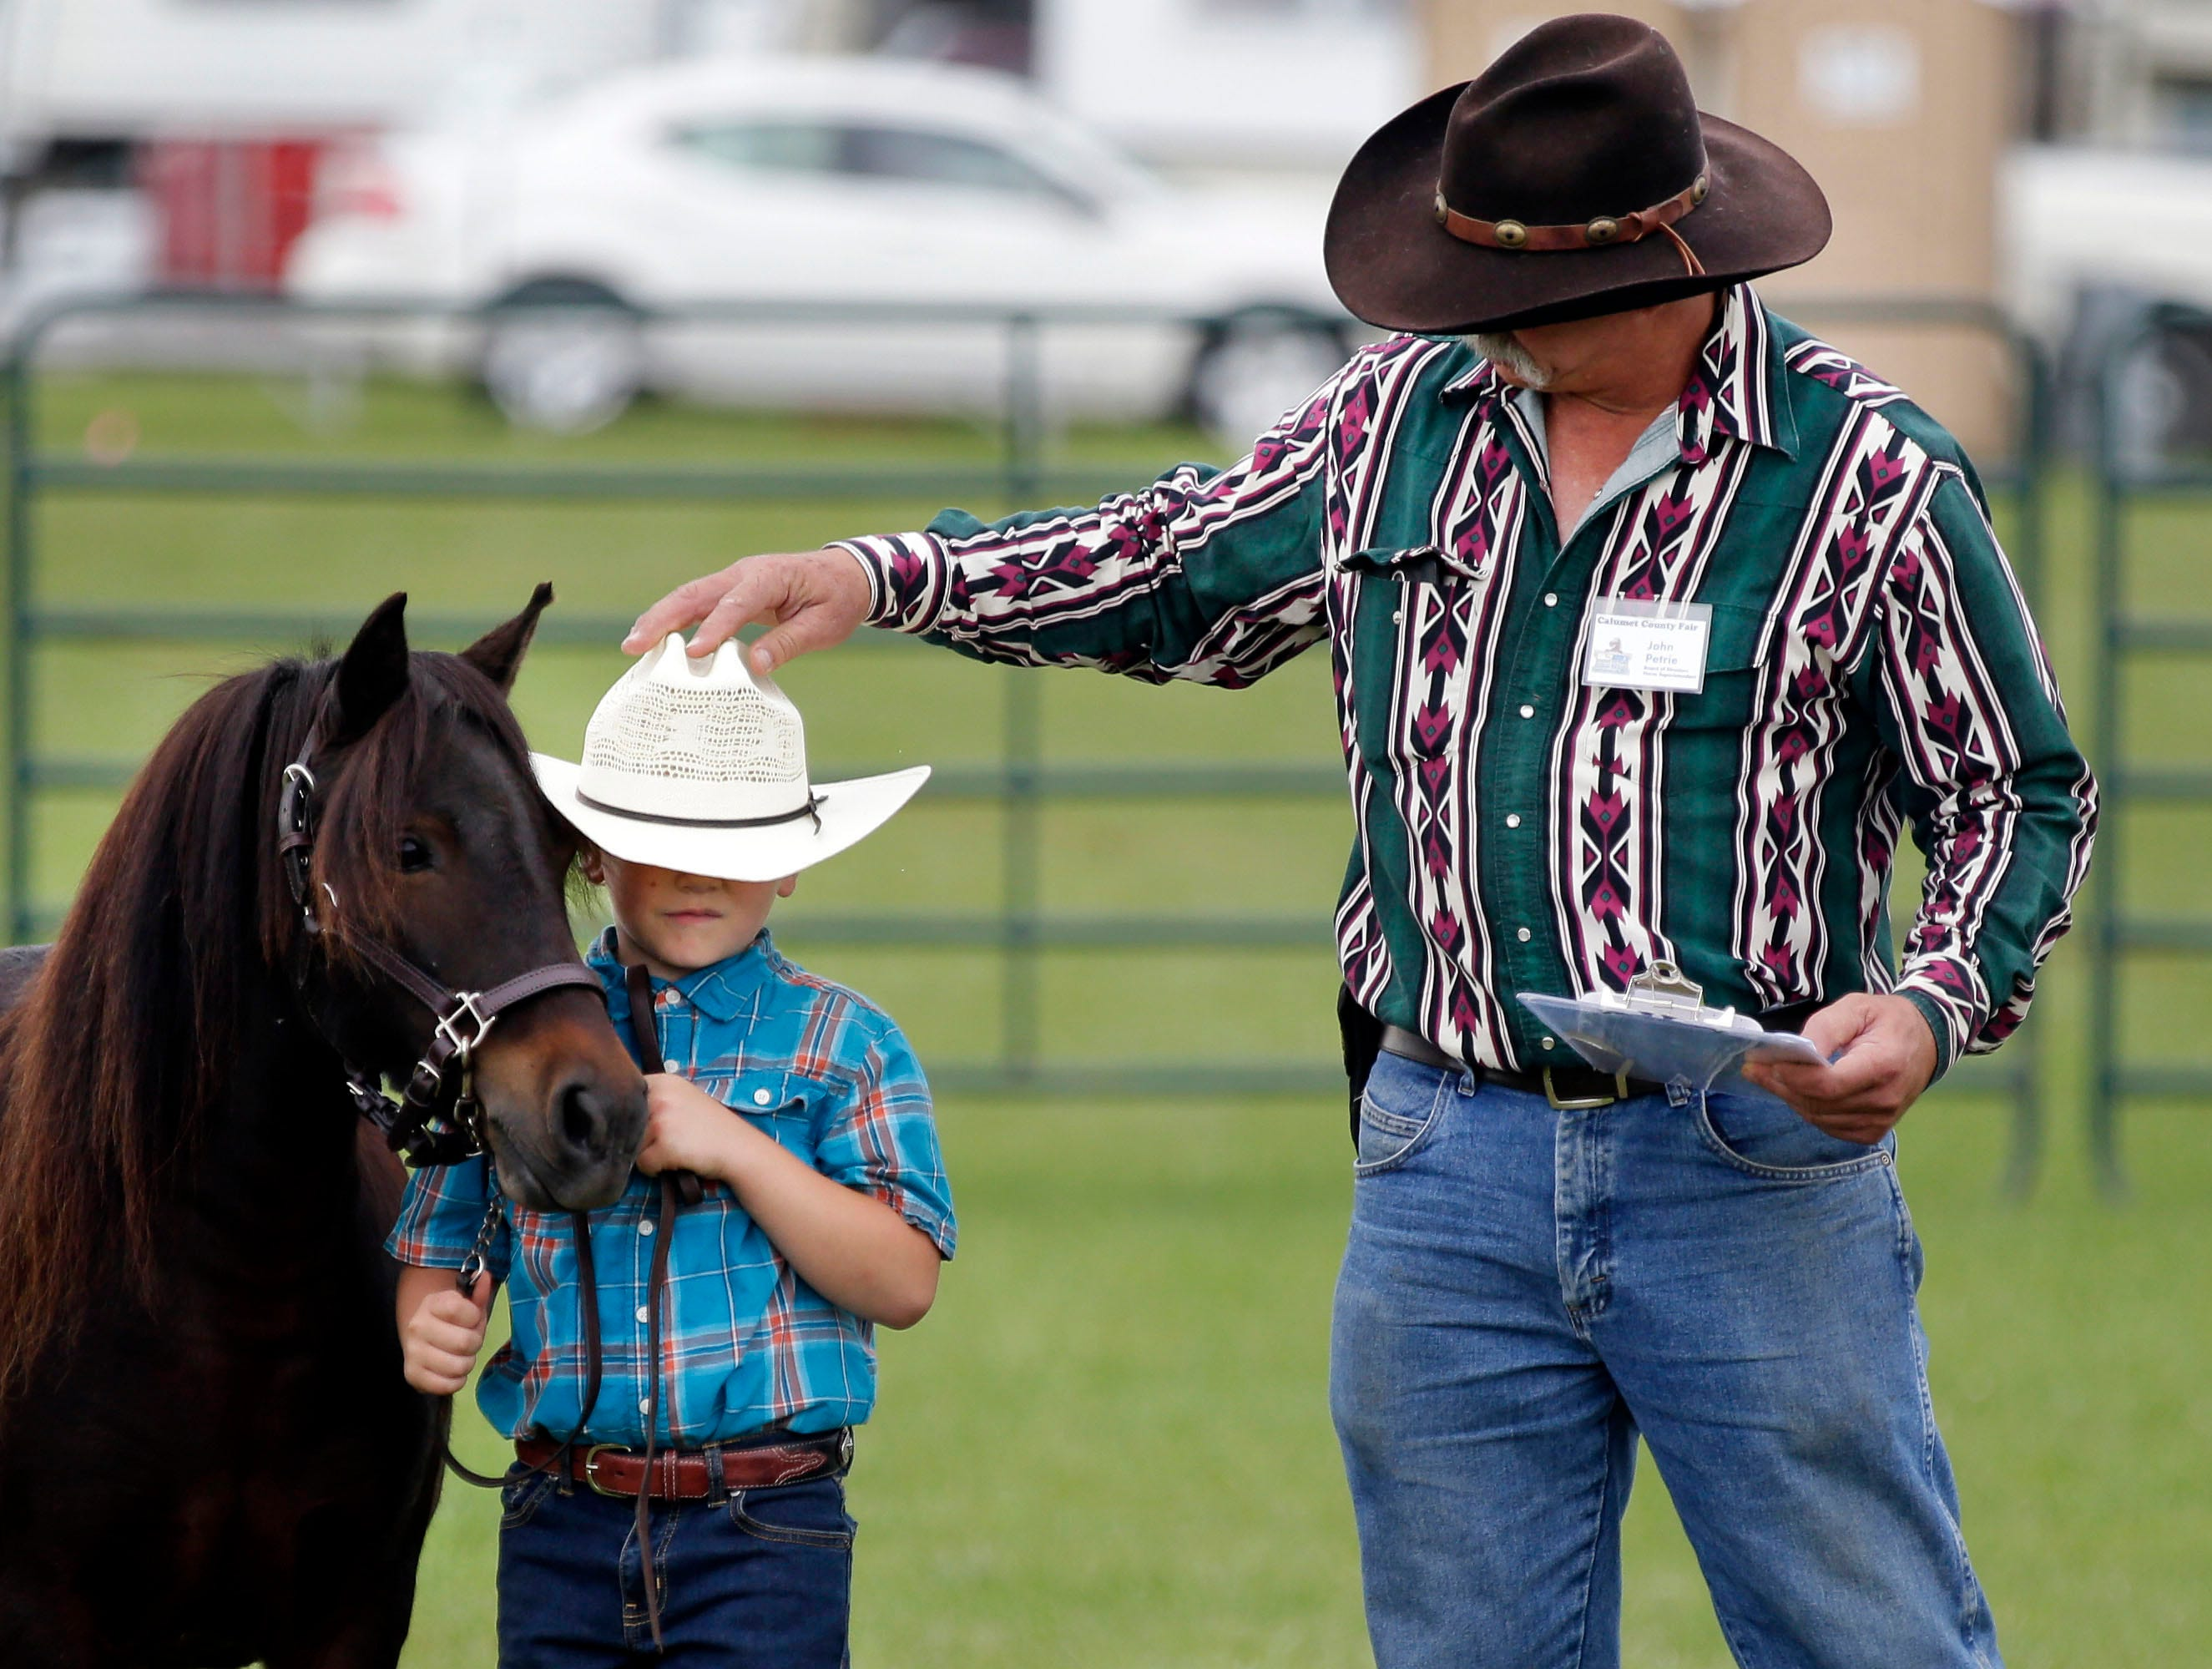 John Petrie, right, returns a hat to Salvatore Alloy after his horse, Brownie, brushed it off during the Pony Halter judging at the Calumet County Fair Saturday, September 1, 2018, in Chilton, Wis.